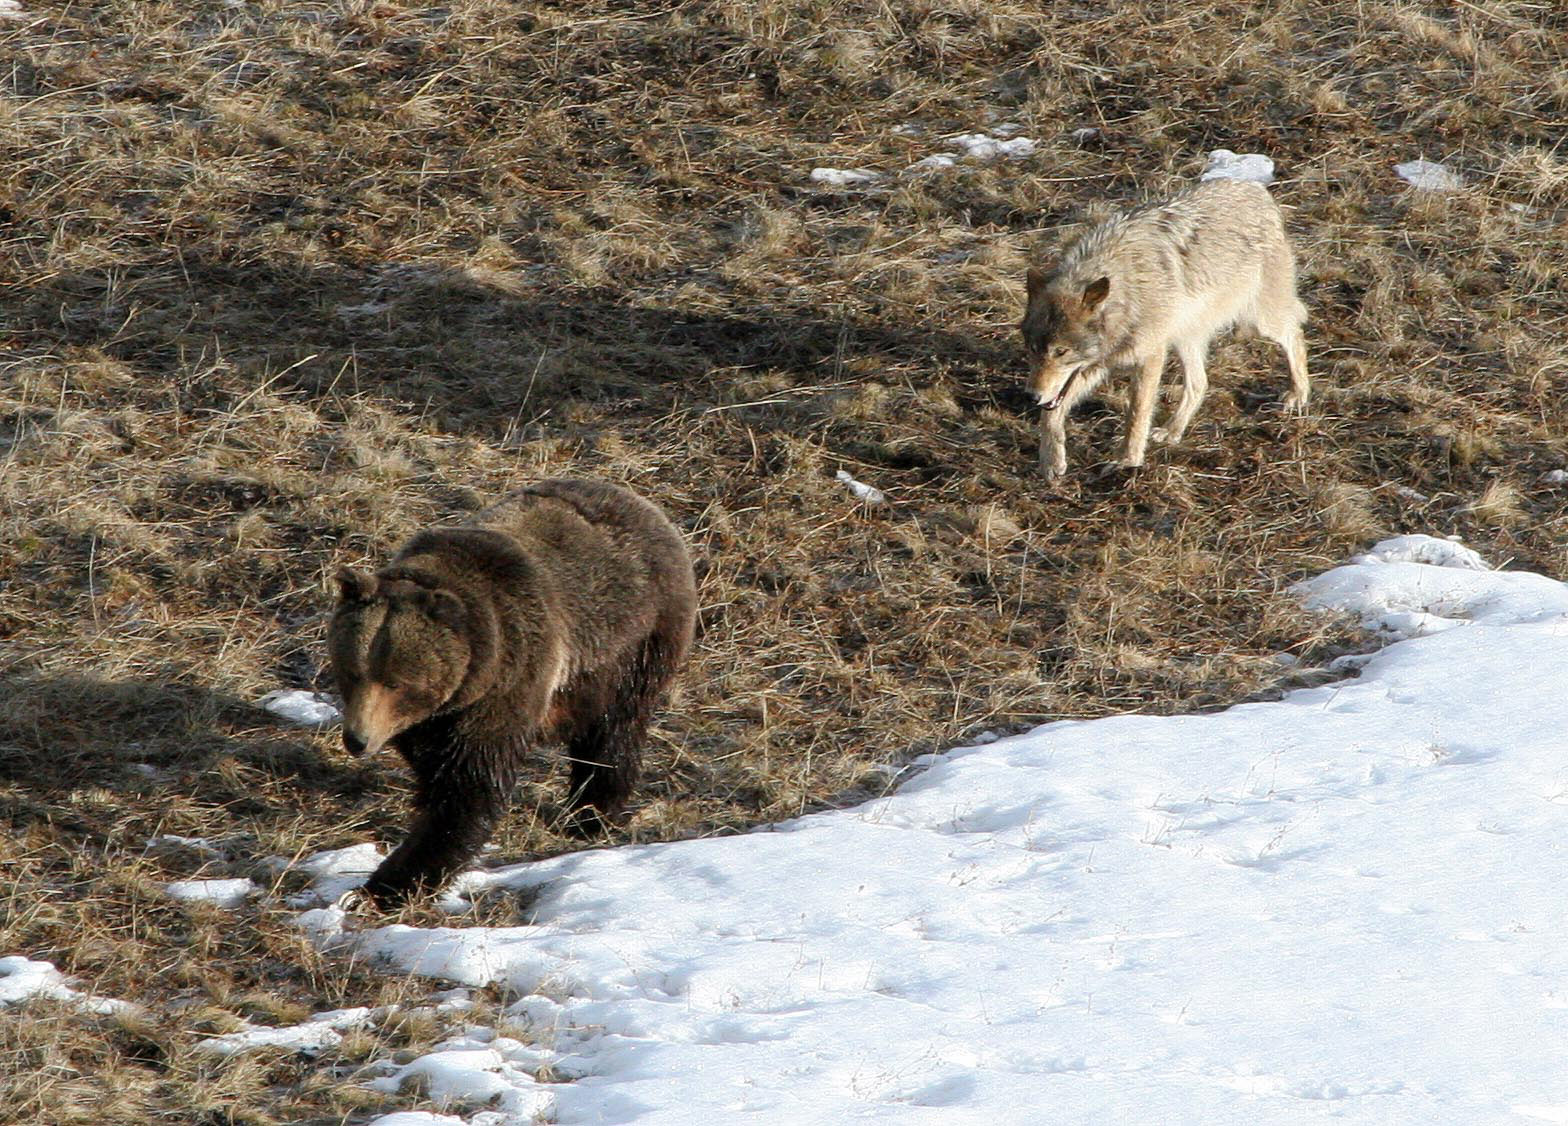 Siberian Tiger Vs Bear Brown bear being followed by a